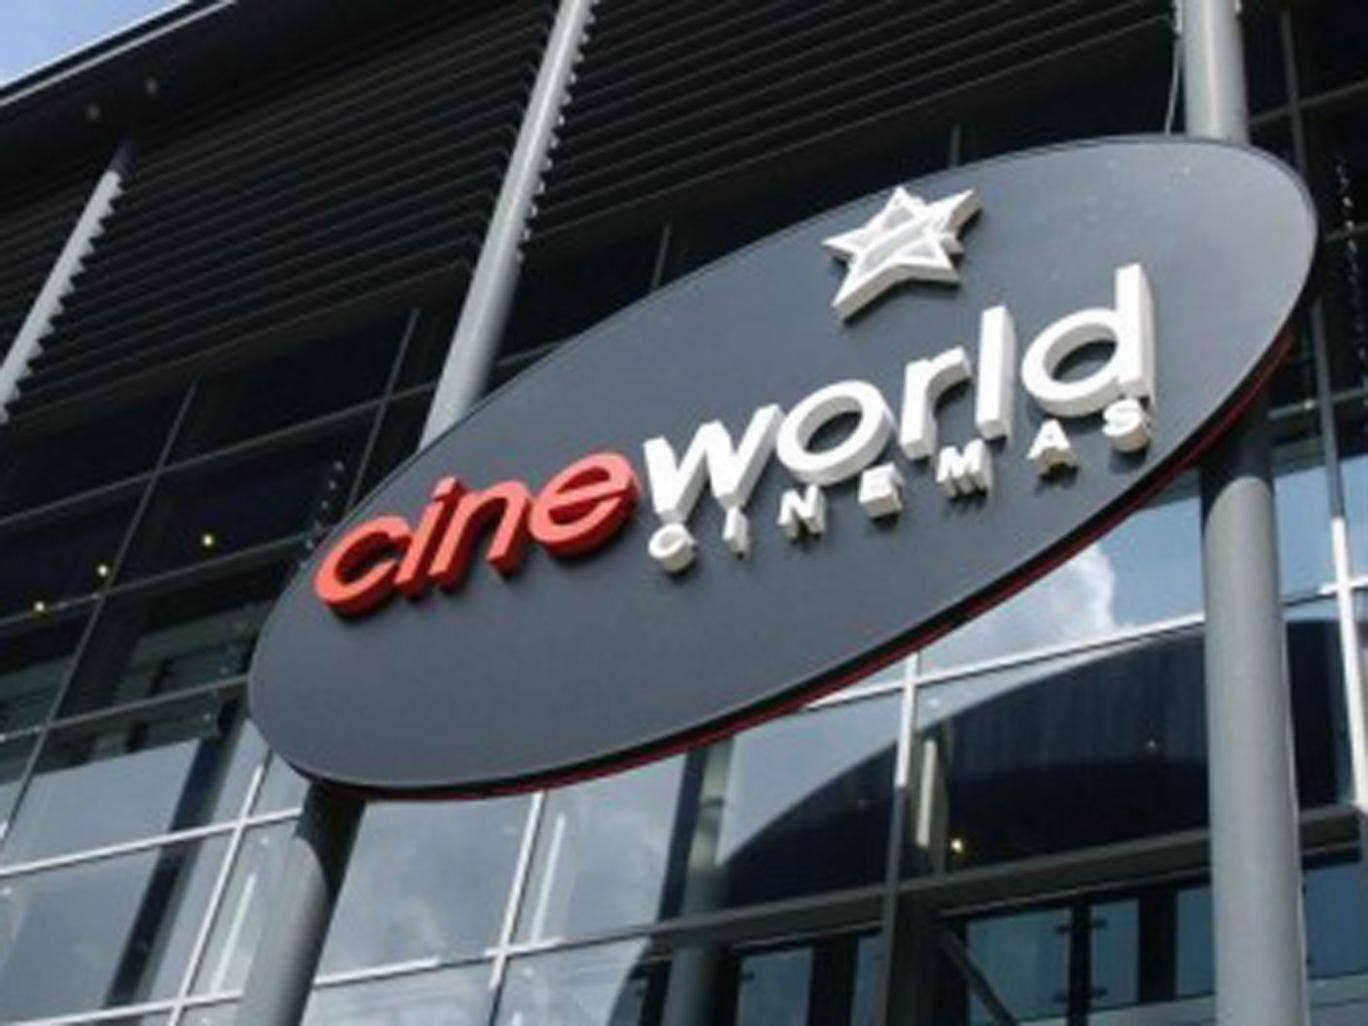 Cineworld stands tall with a 4.5 per cent yield as well as strong earnings growth of 12 per cent a year